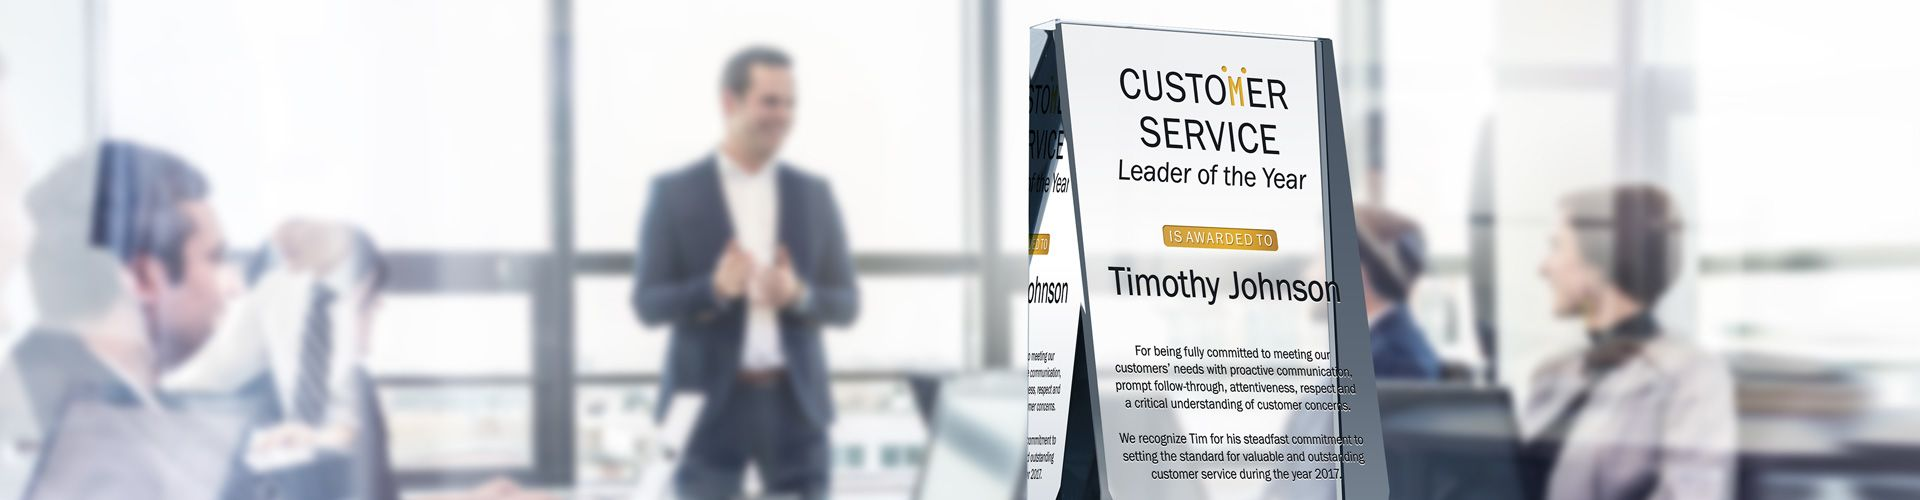 Personalized Crystal Customer Service Awards & Plaques - Banner 1